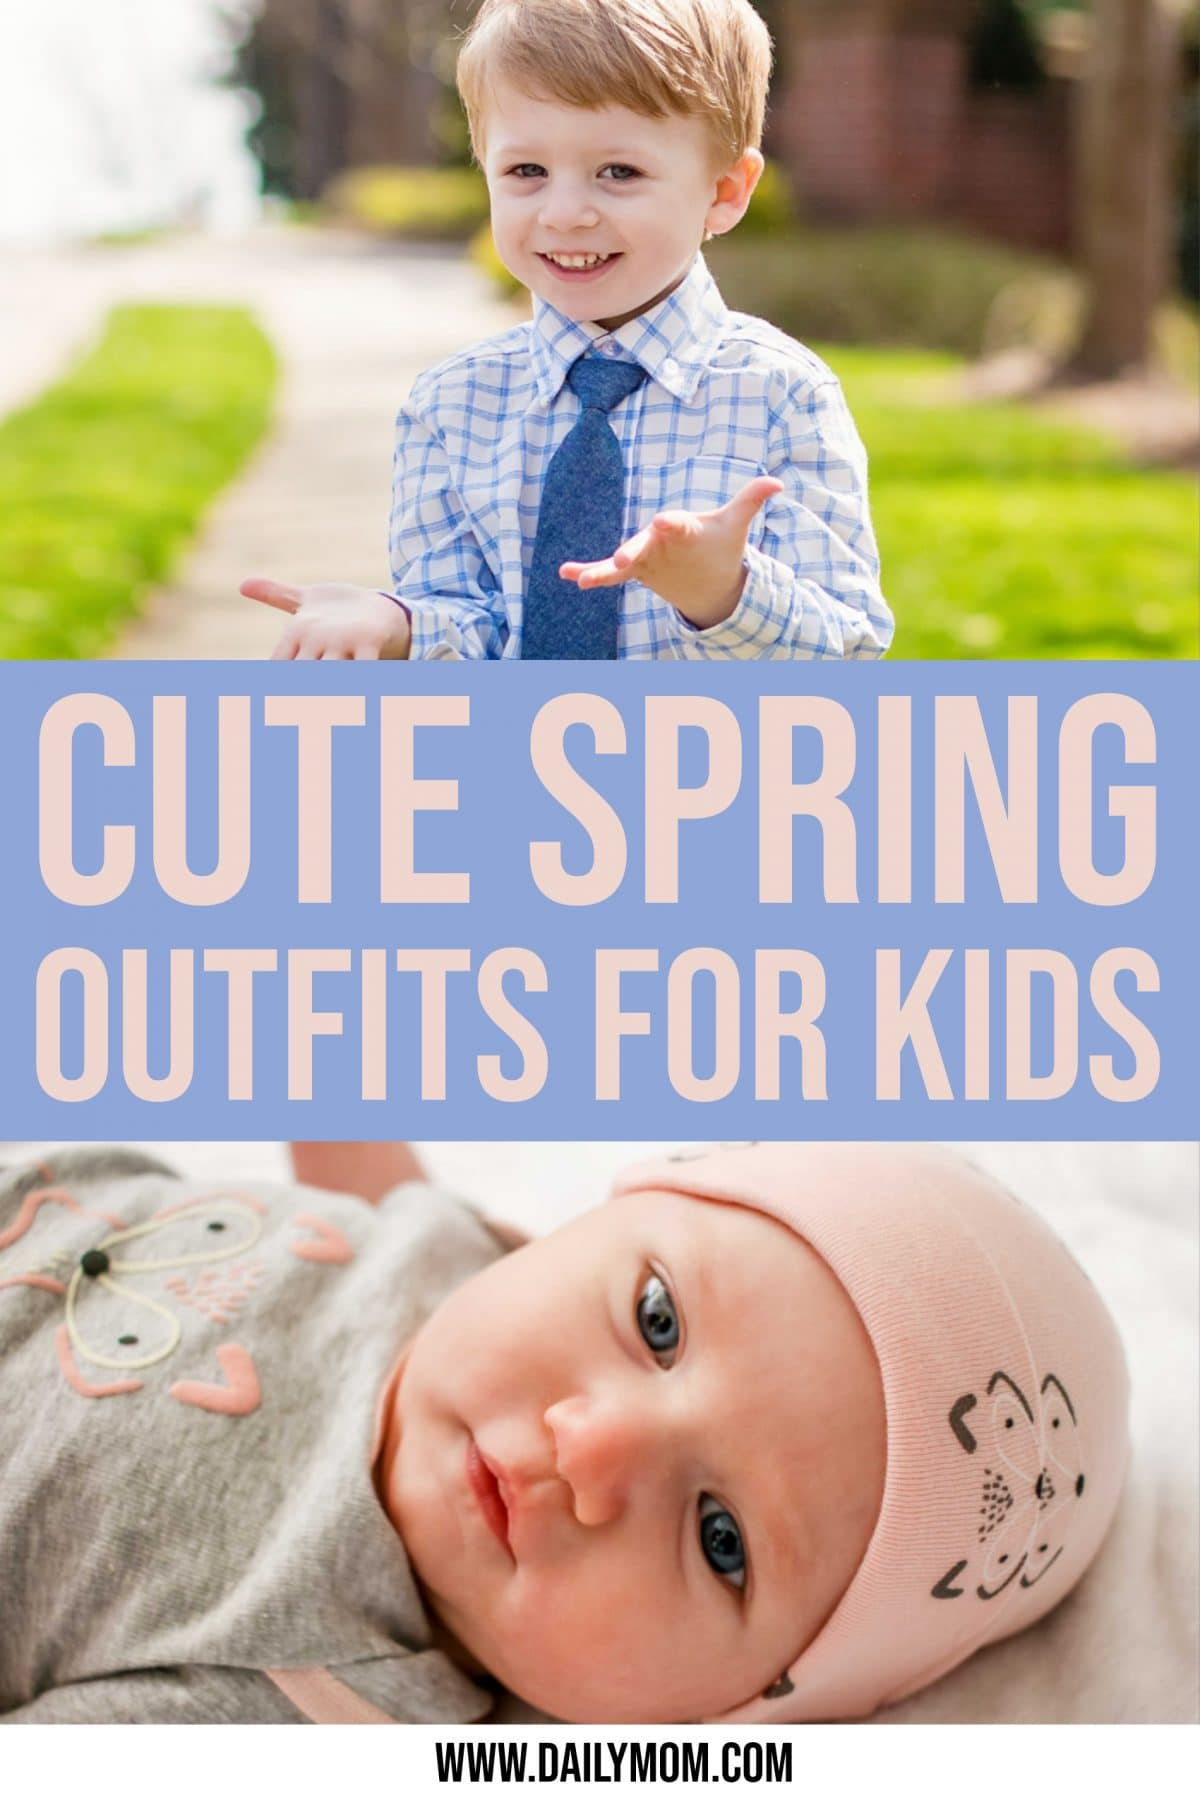 daily mom parent portal Cute Spring Outfits